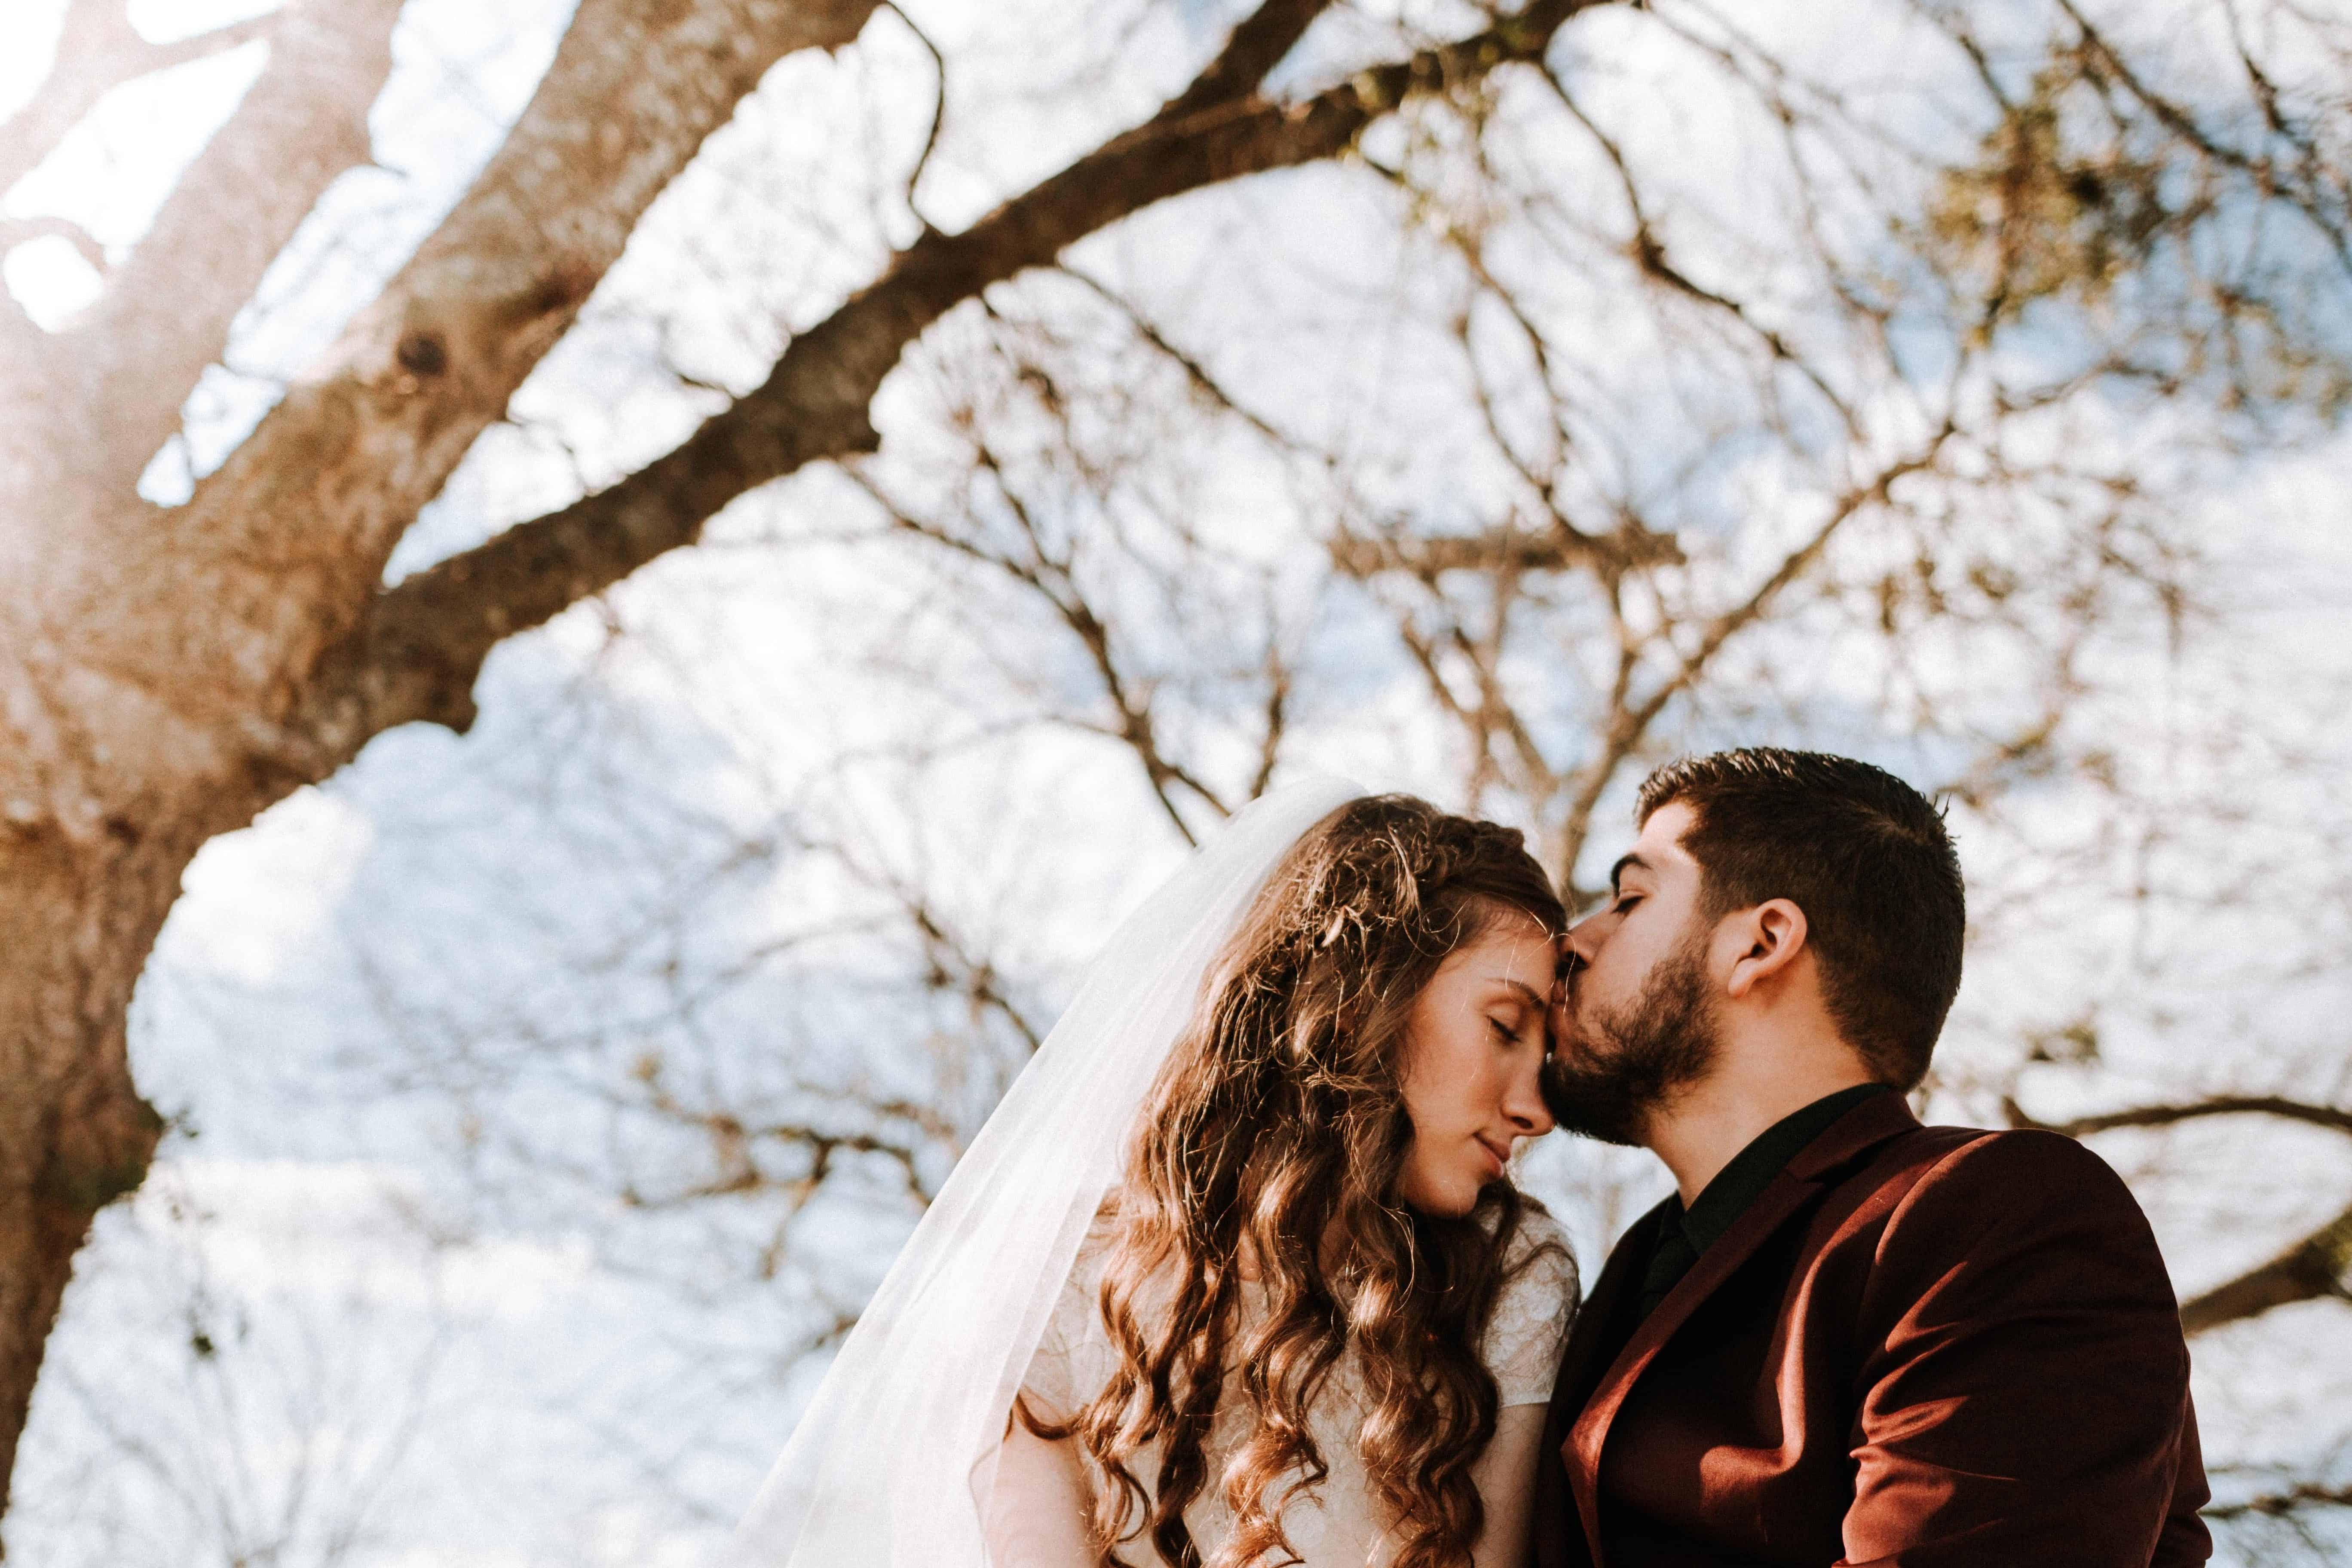 7 Unexpected Benefits of Marriage